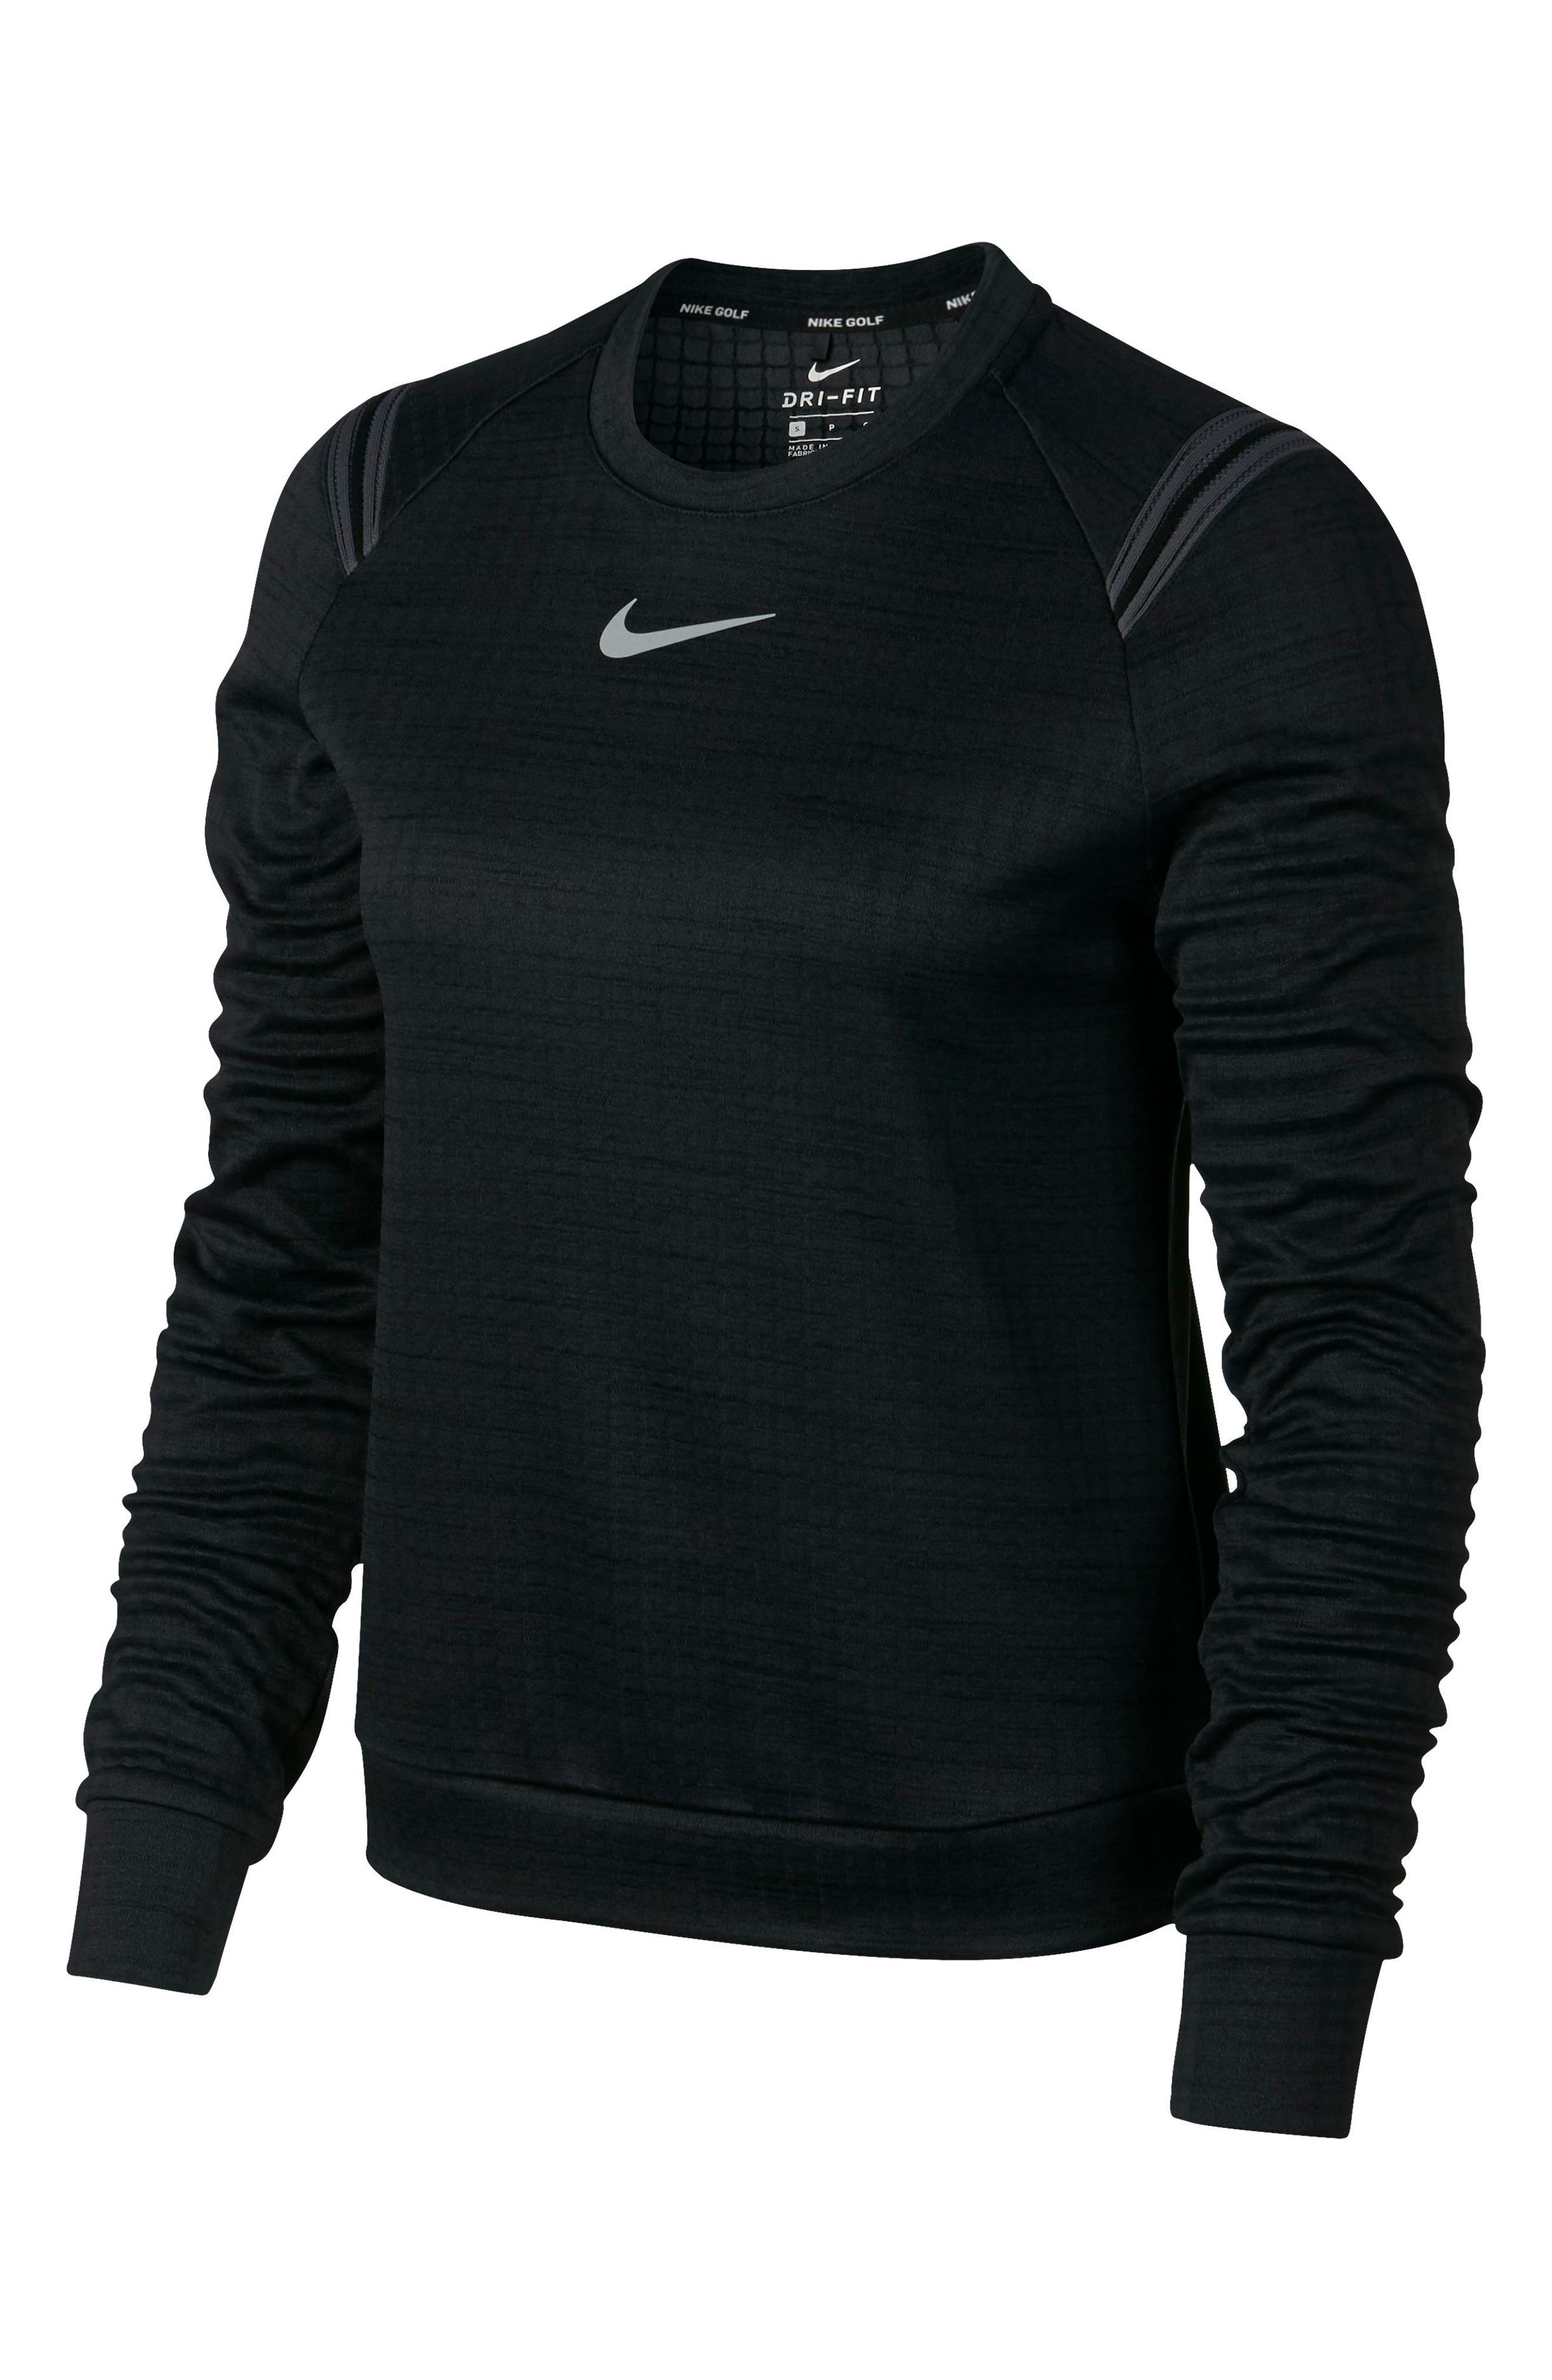 Therma Sphere Long Sleeve Top,                             Alternate thumbnail 6, color,                             010